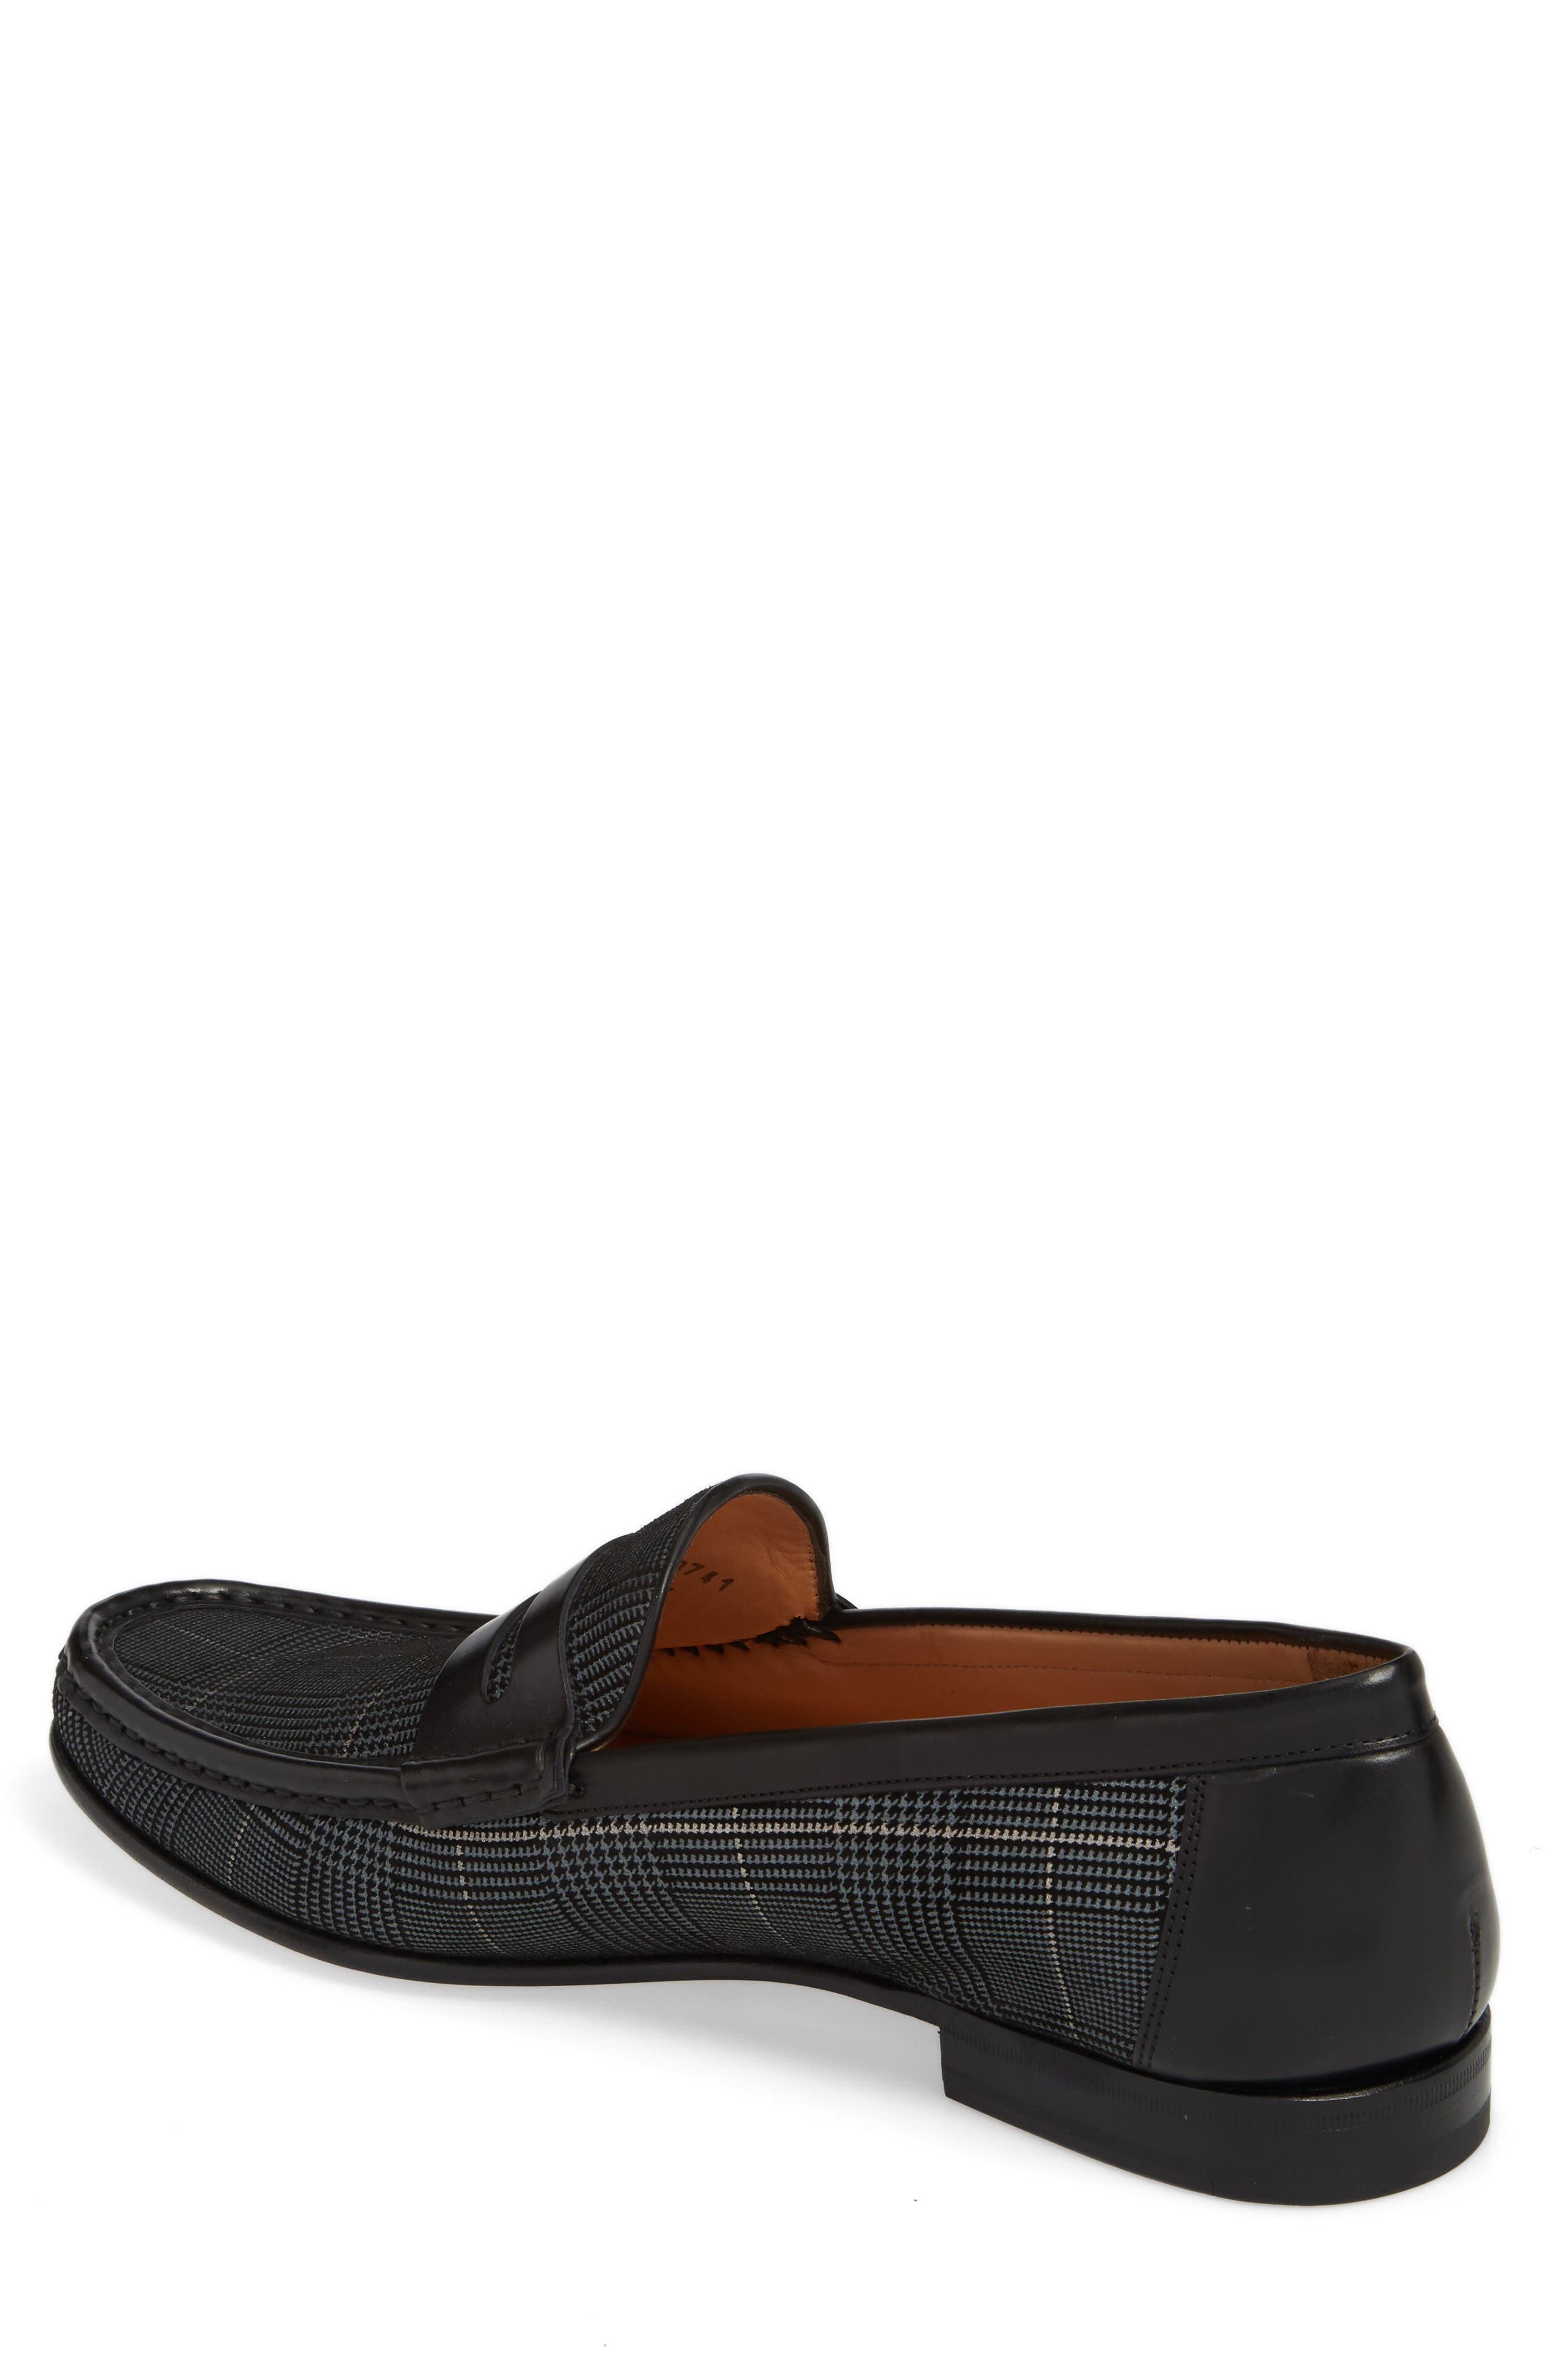 Lares I Houndstooth Penny Loafer,                             Alternate thumbnail 2, color,                             Black Suede/ Leather